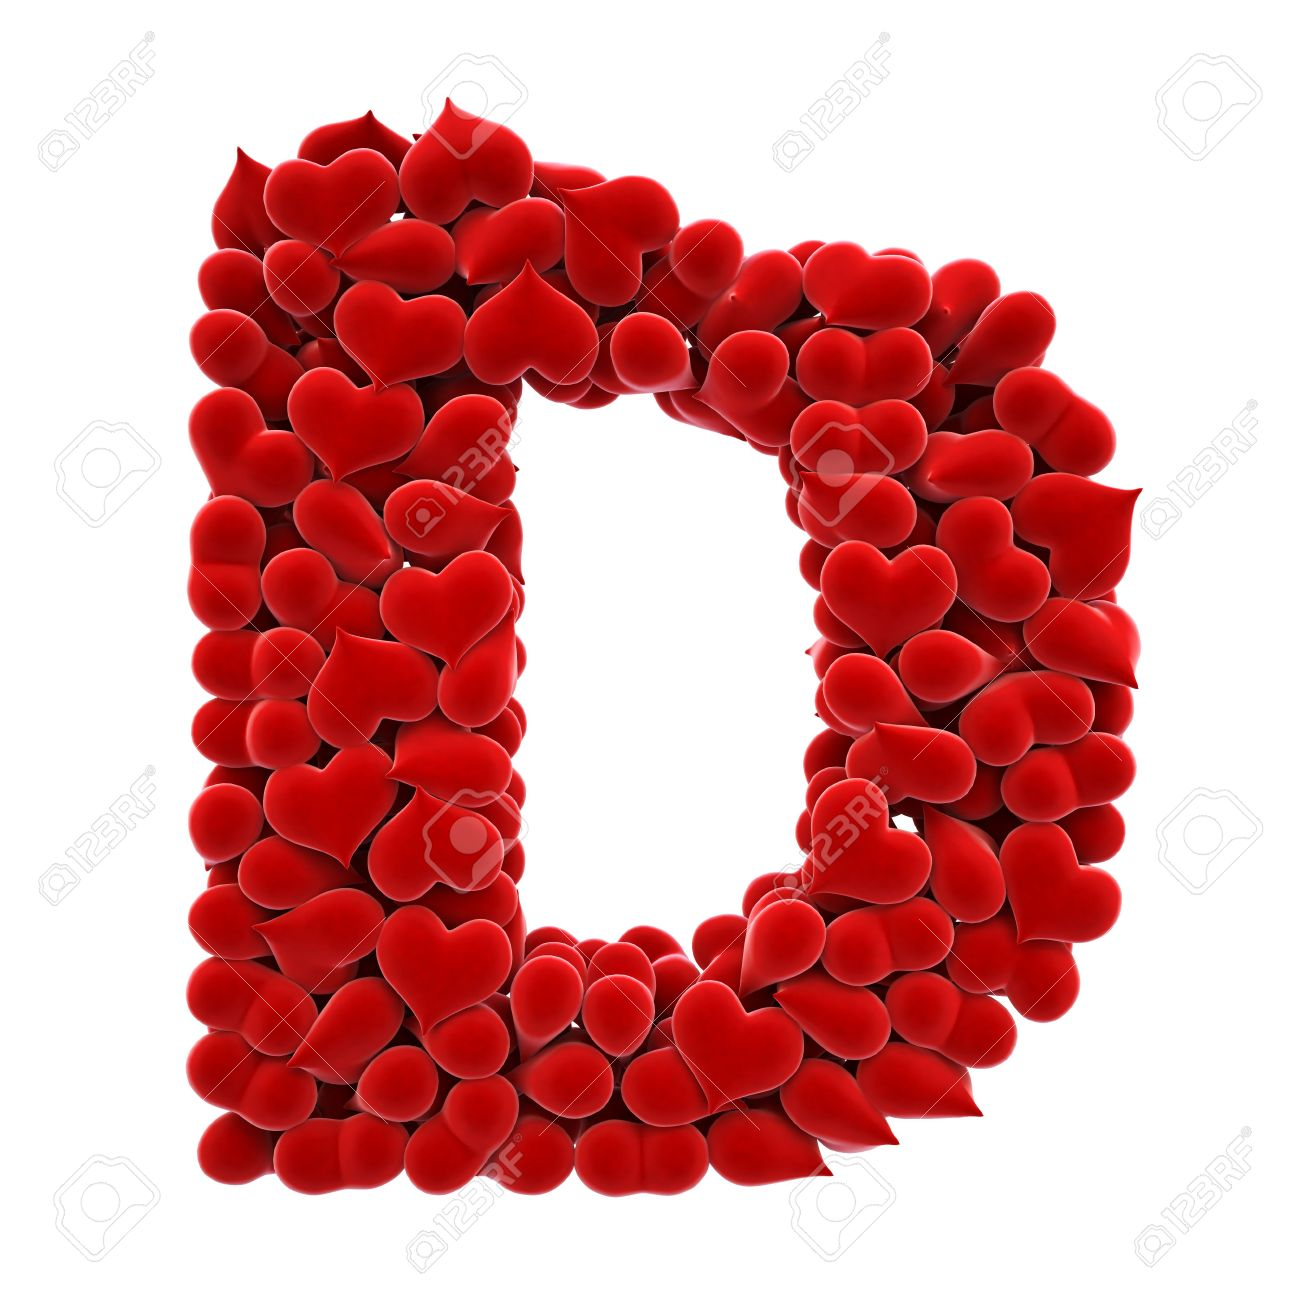 a lot of hearts of velvet in the form of letters. Stock Photo - 6681604